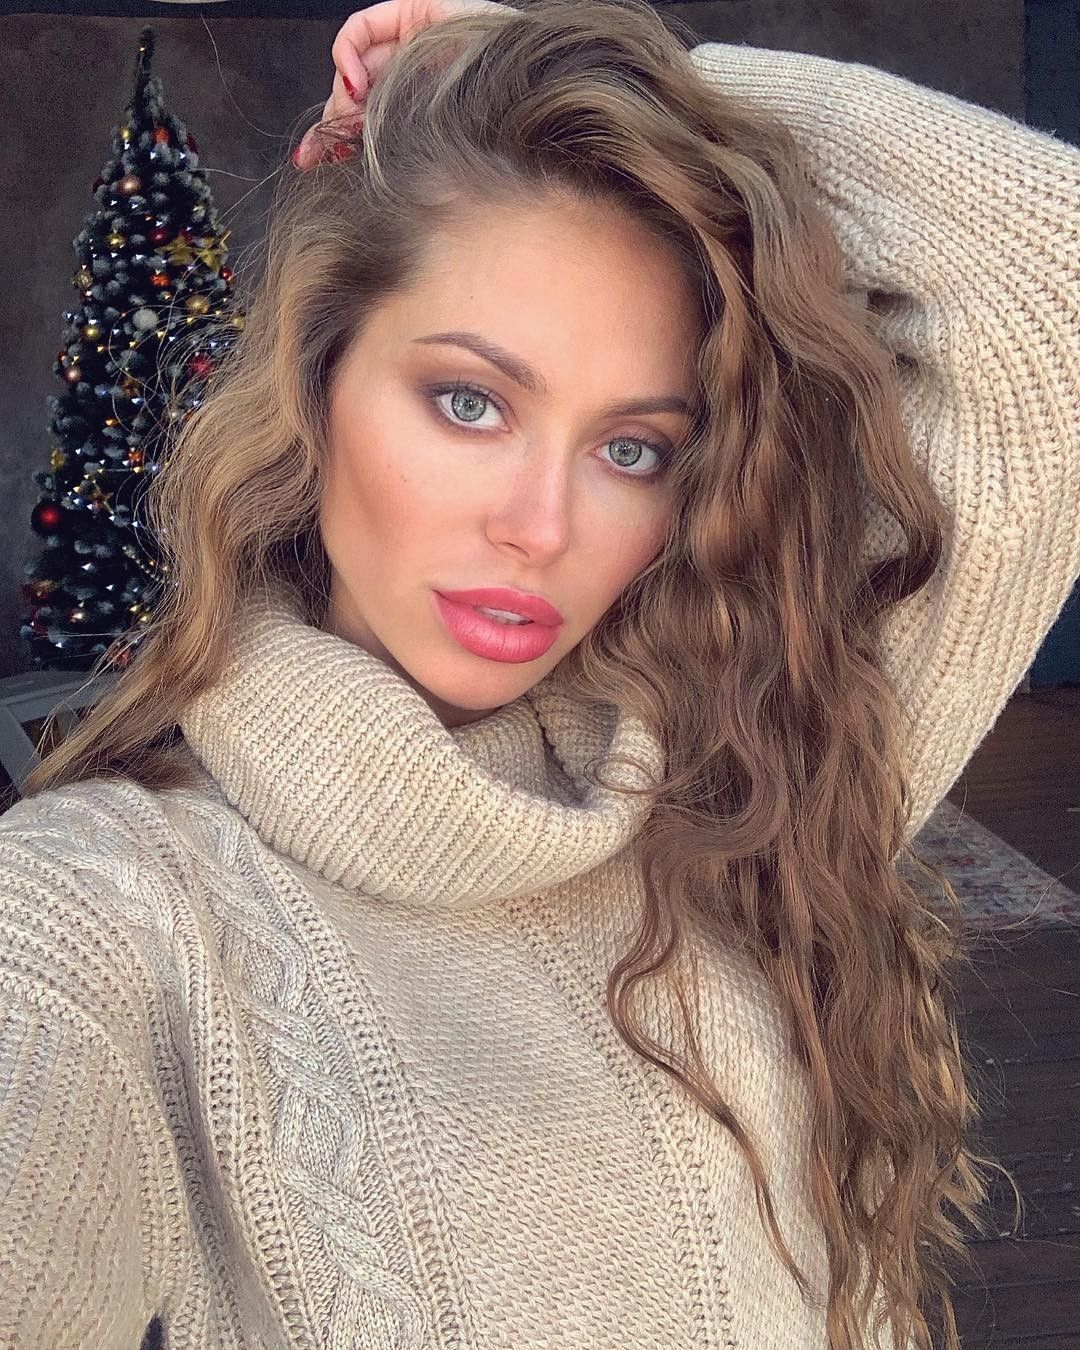 Is There a Language Barrier? Russian Dating Advice with